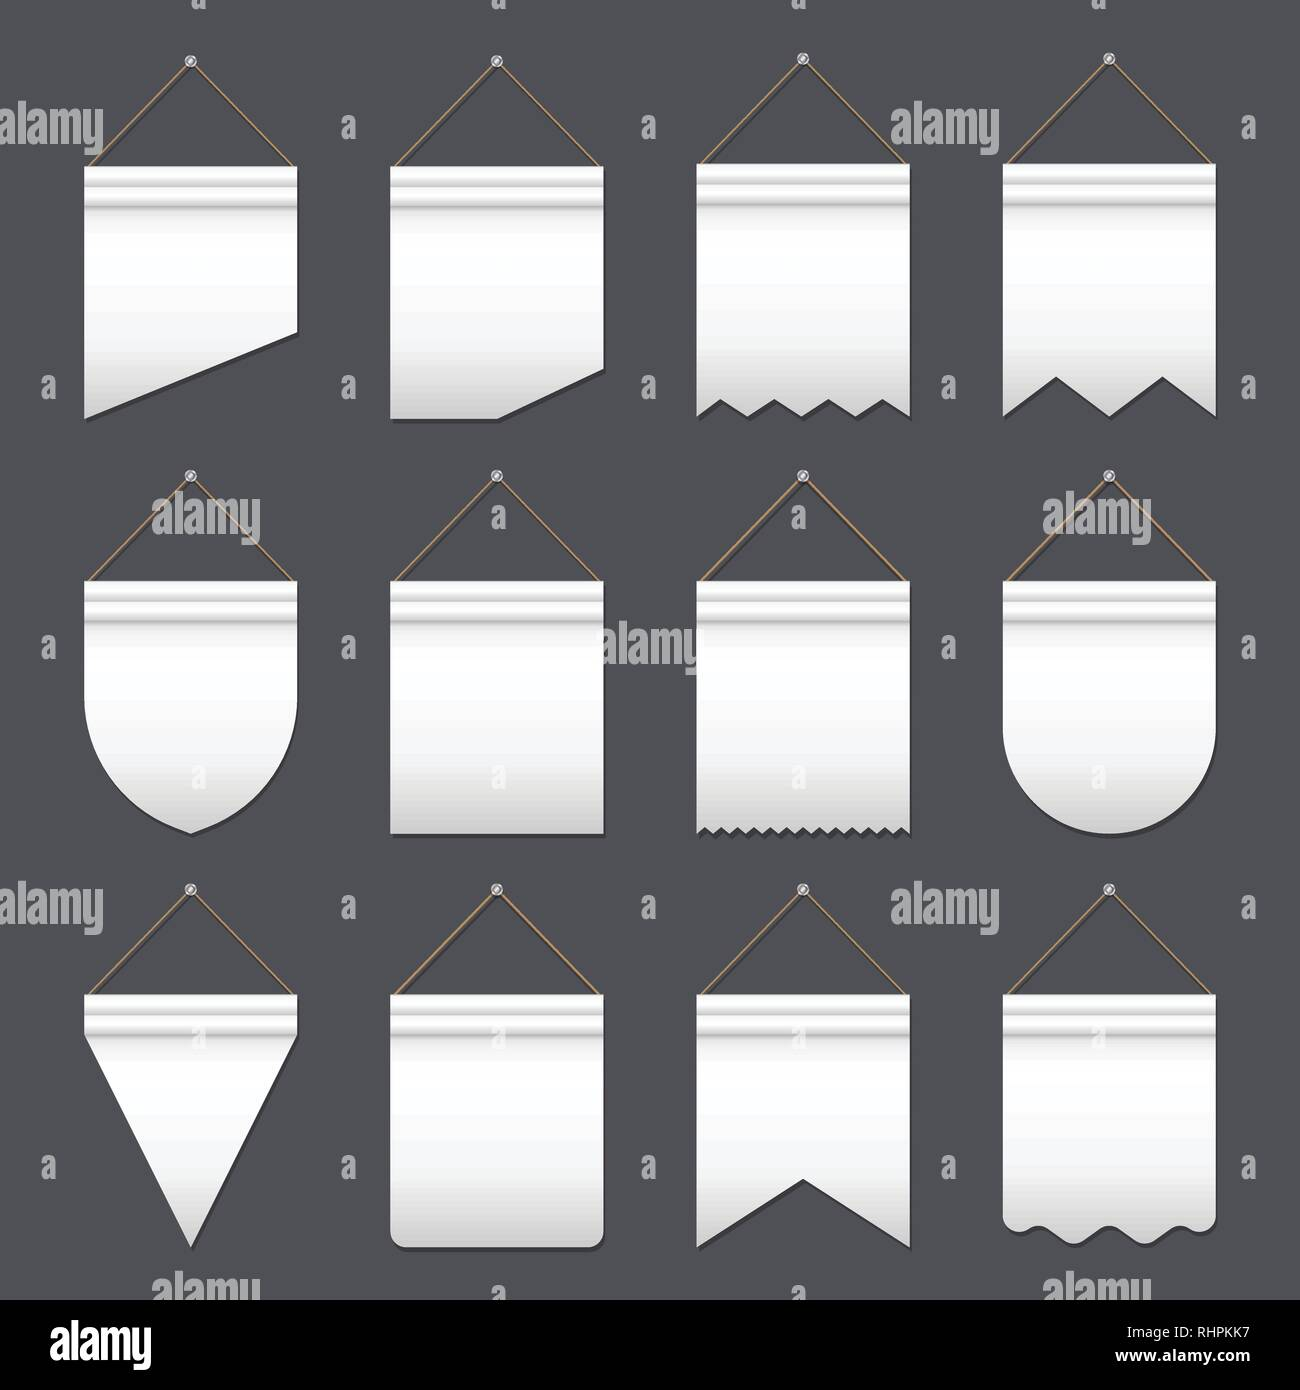 Set of various flags - Stock Image